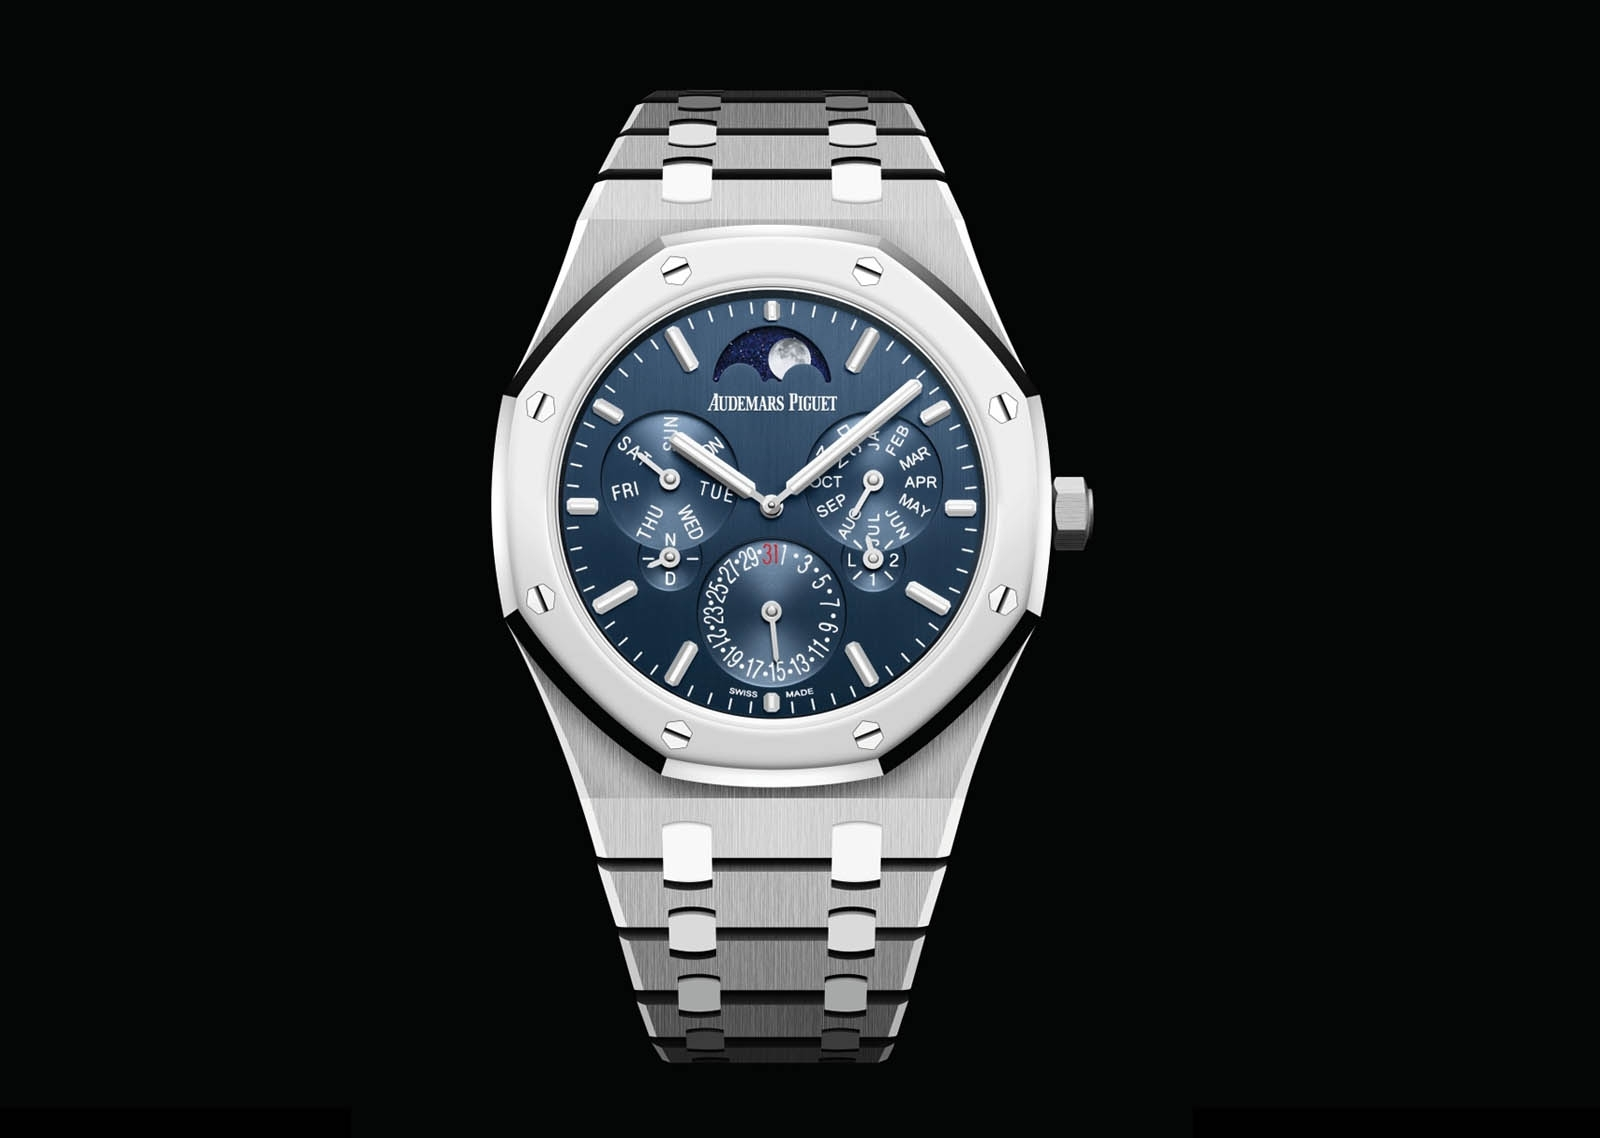 Audemars Piguet Royal Oak Perpetual Calendar Ultra-Thin - Выкуп Audemars Piguet